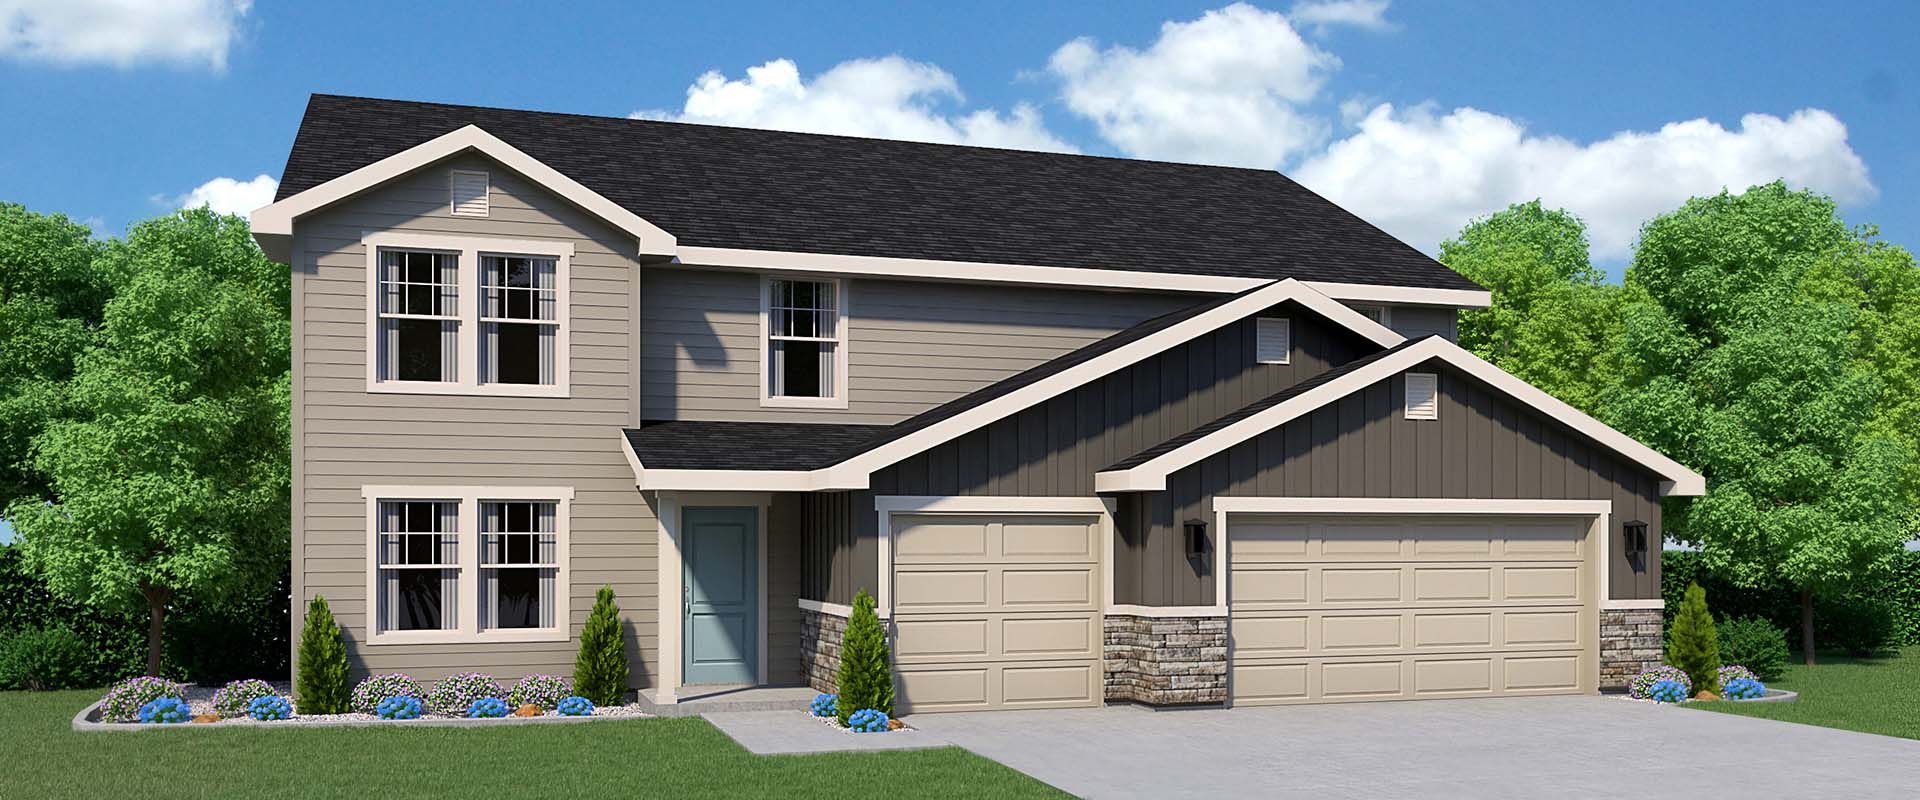 new-homes-boise-idaho-hubble-homes_0043_Agate Country 3rd Car pack 44.jpg